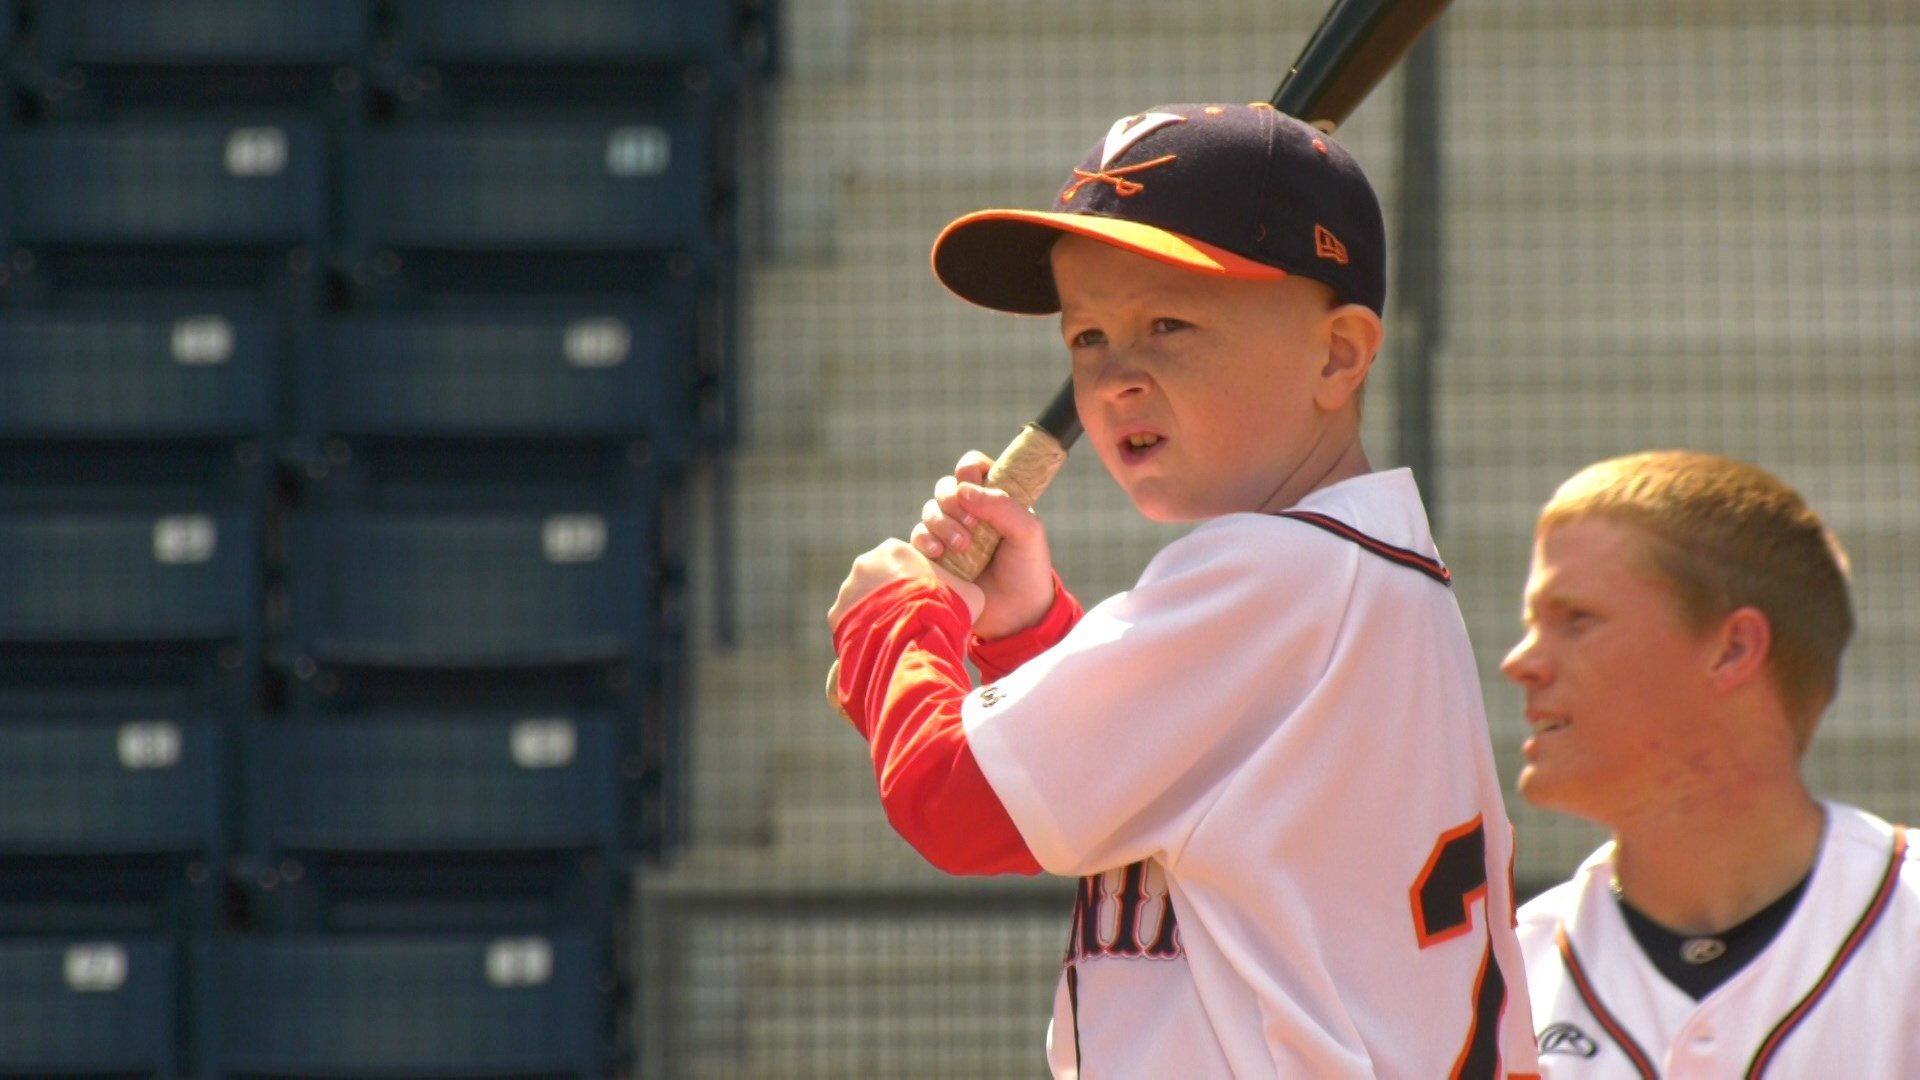 Parker went out on the field with the UVA baseball team to take batting practice Monday